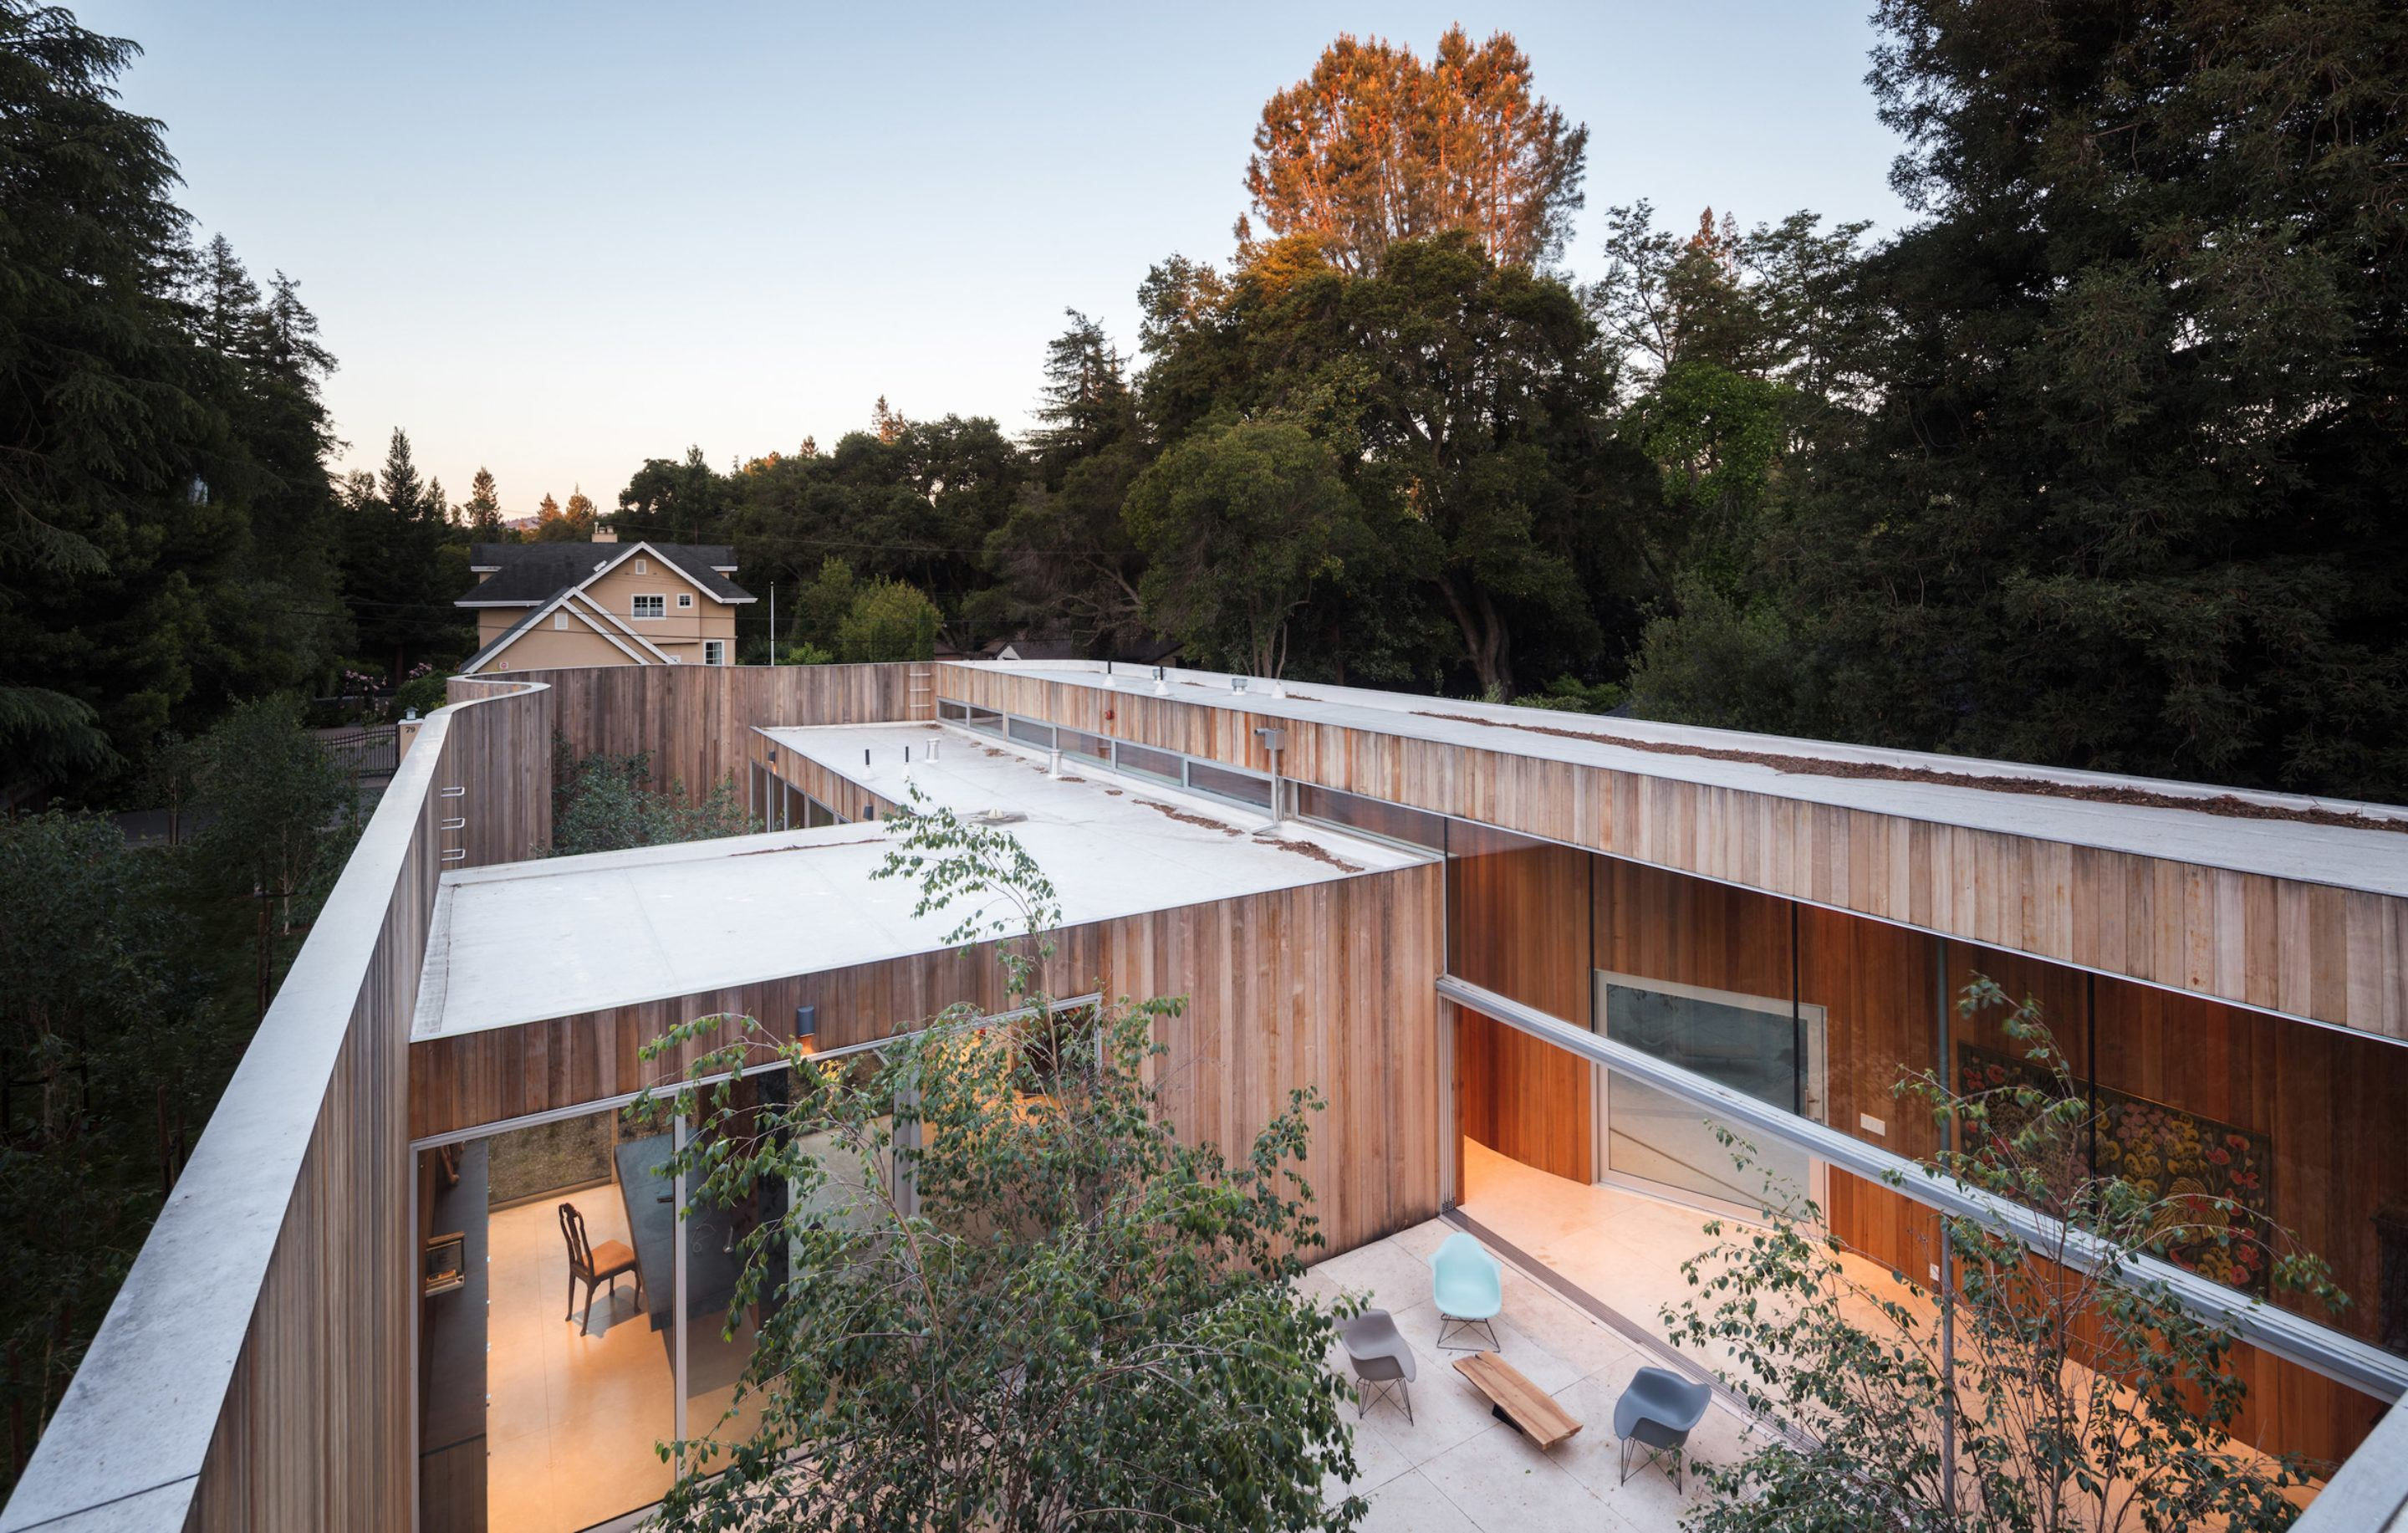 IGNANT-Architecture-Craig-Steely-Architecture-Roofless-House-13